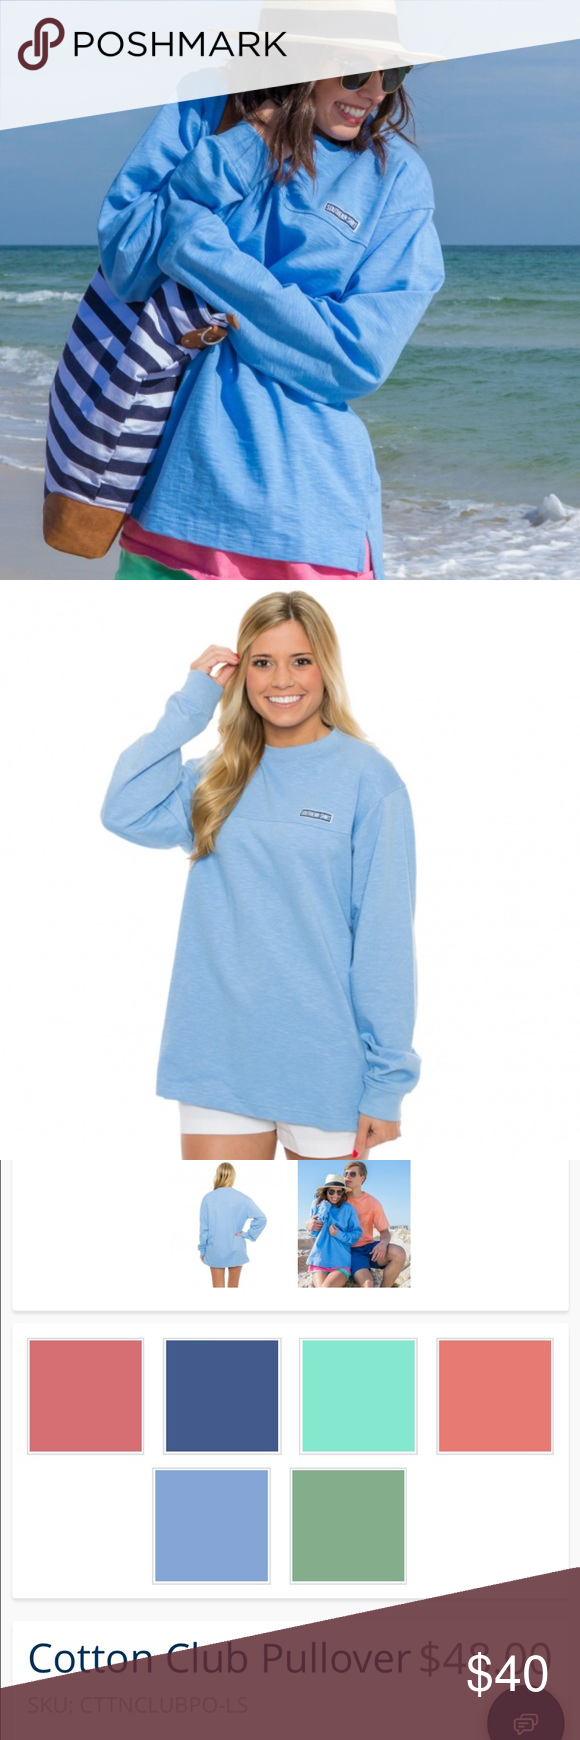 Southern Shirt Cotton Club Pullover | Cotton club, Pullover and ...